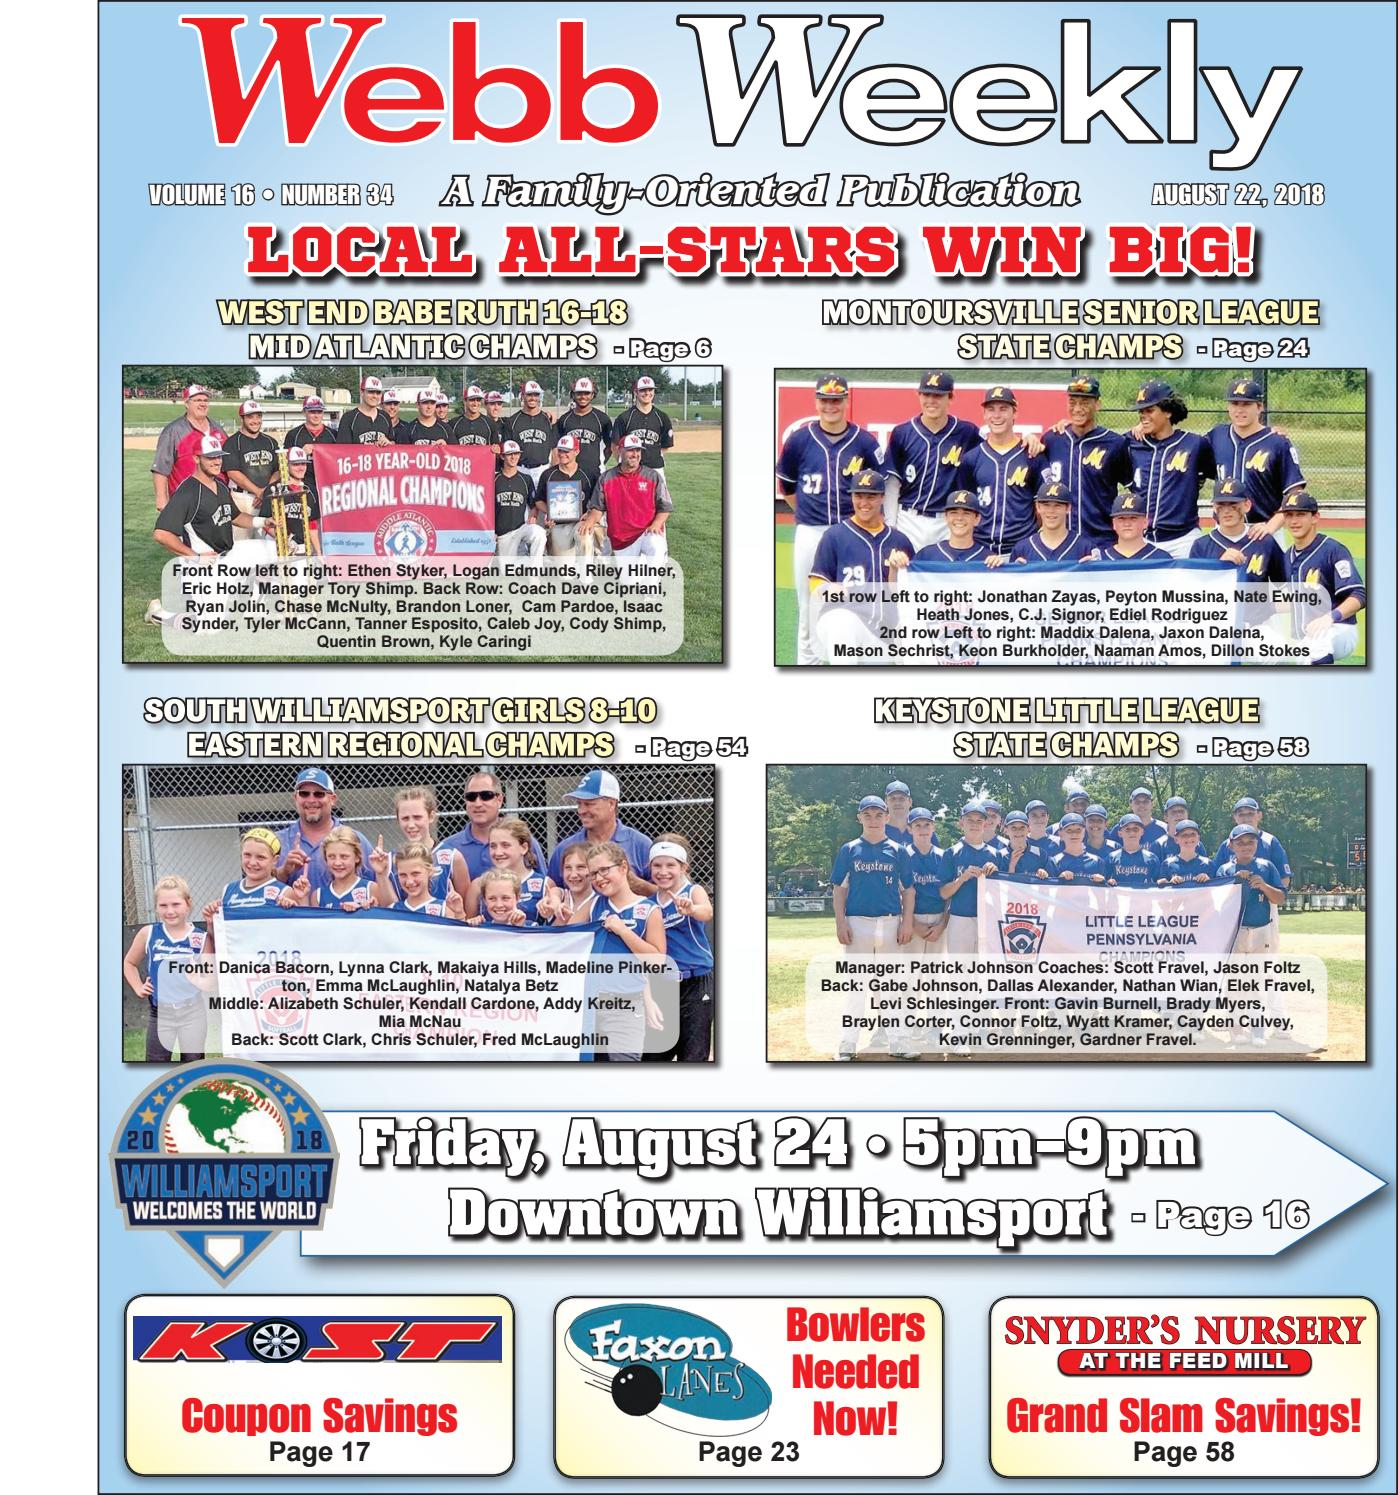 f38b59e2 Webb Weekly - August 22, 2018 by Webb Weekly - issuu